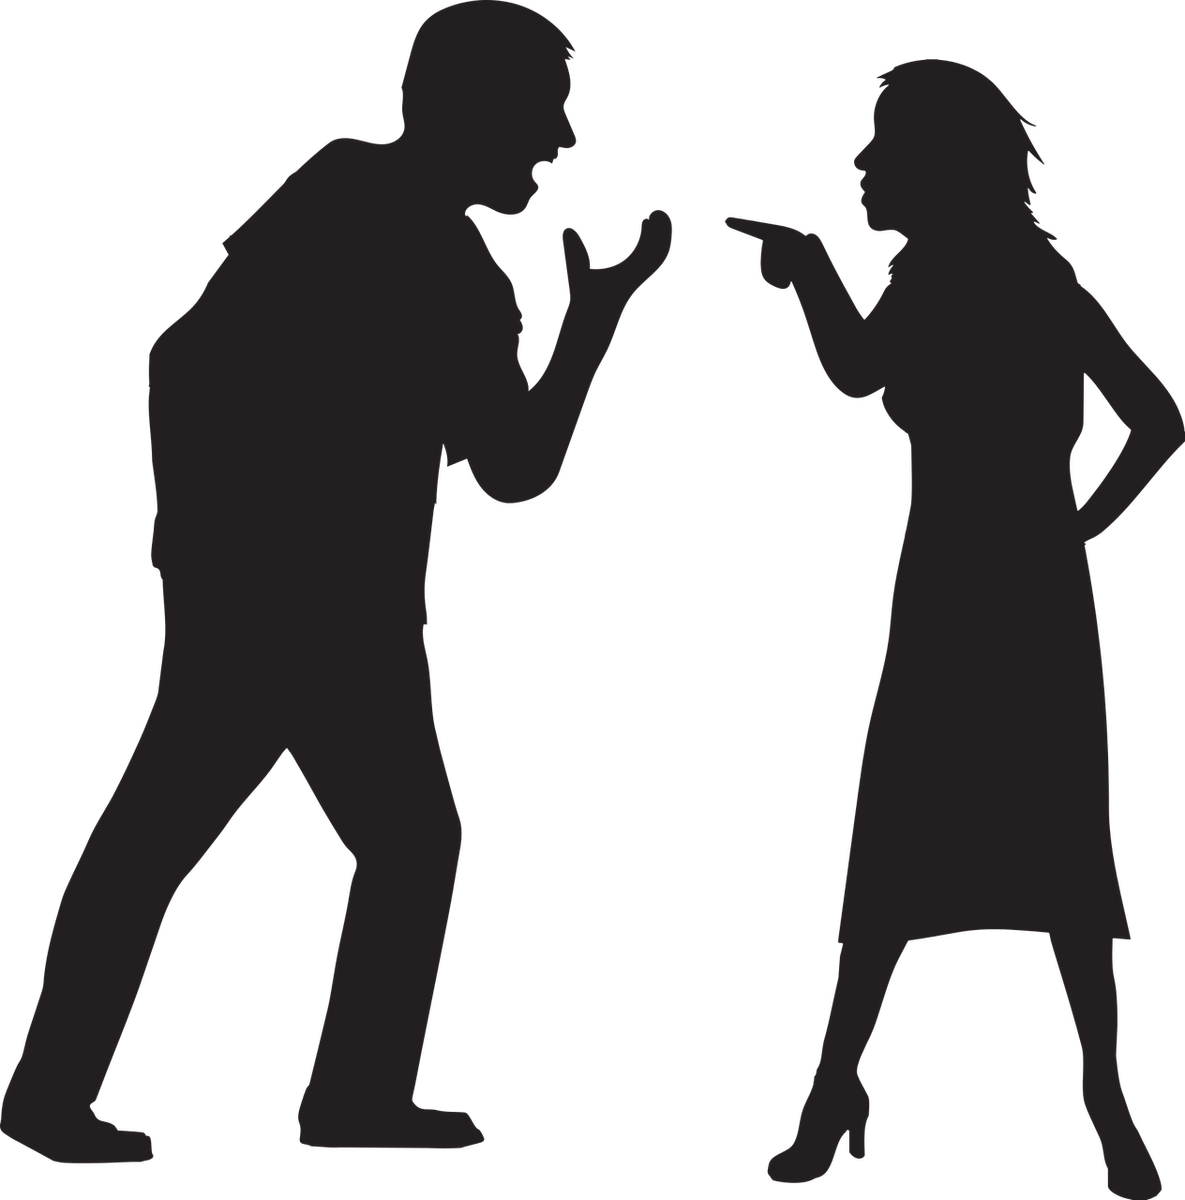 Communication clipart poor communication. The killer of most